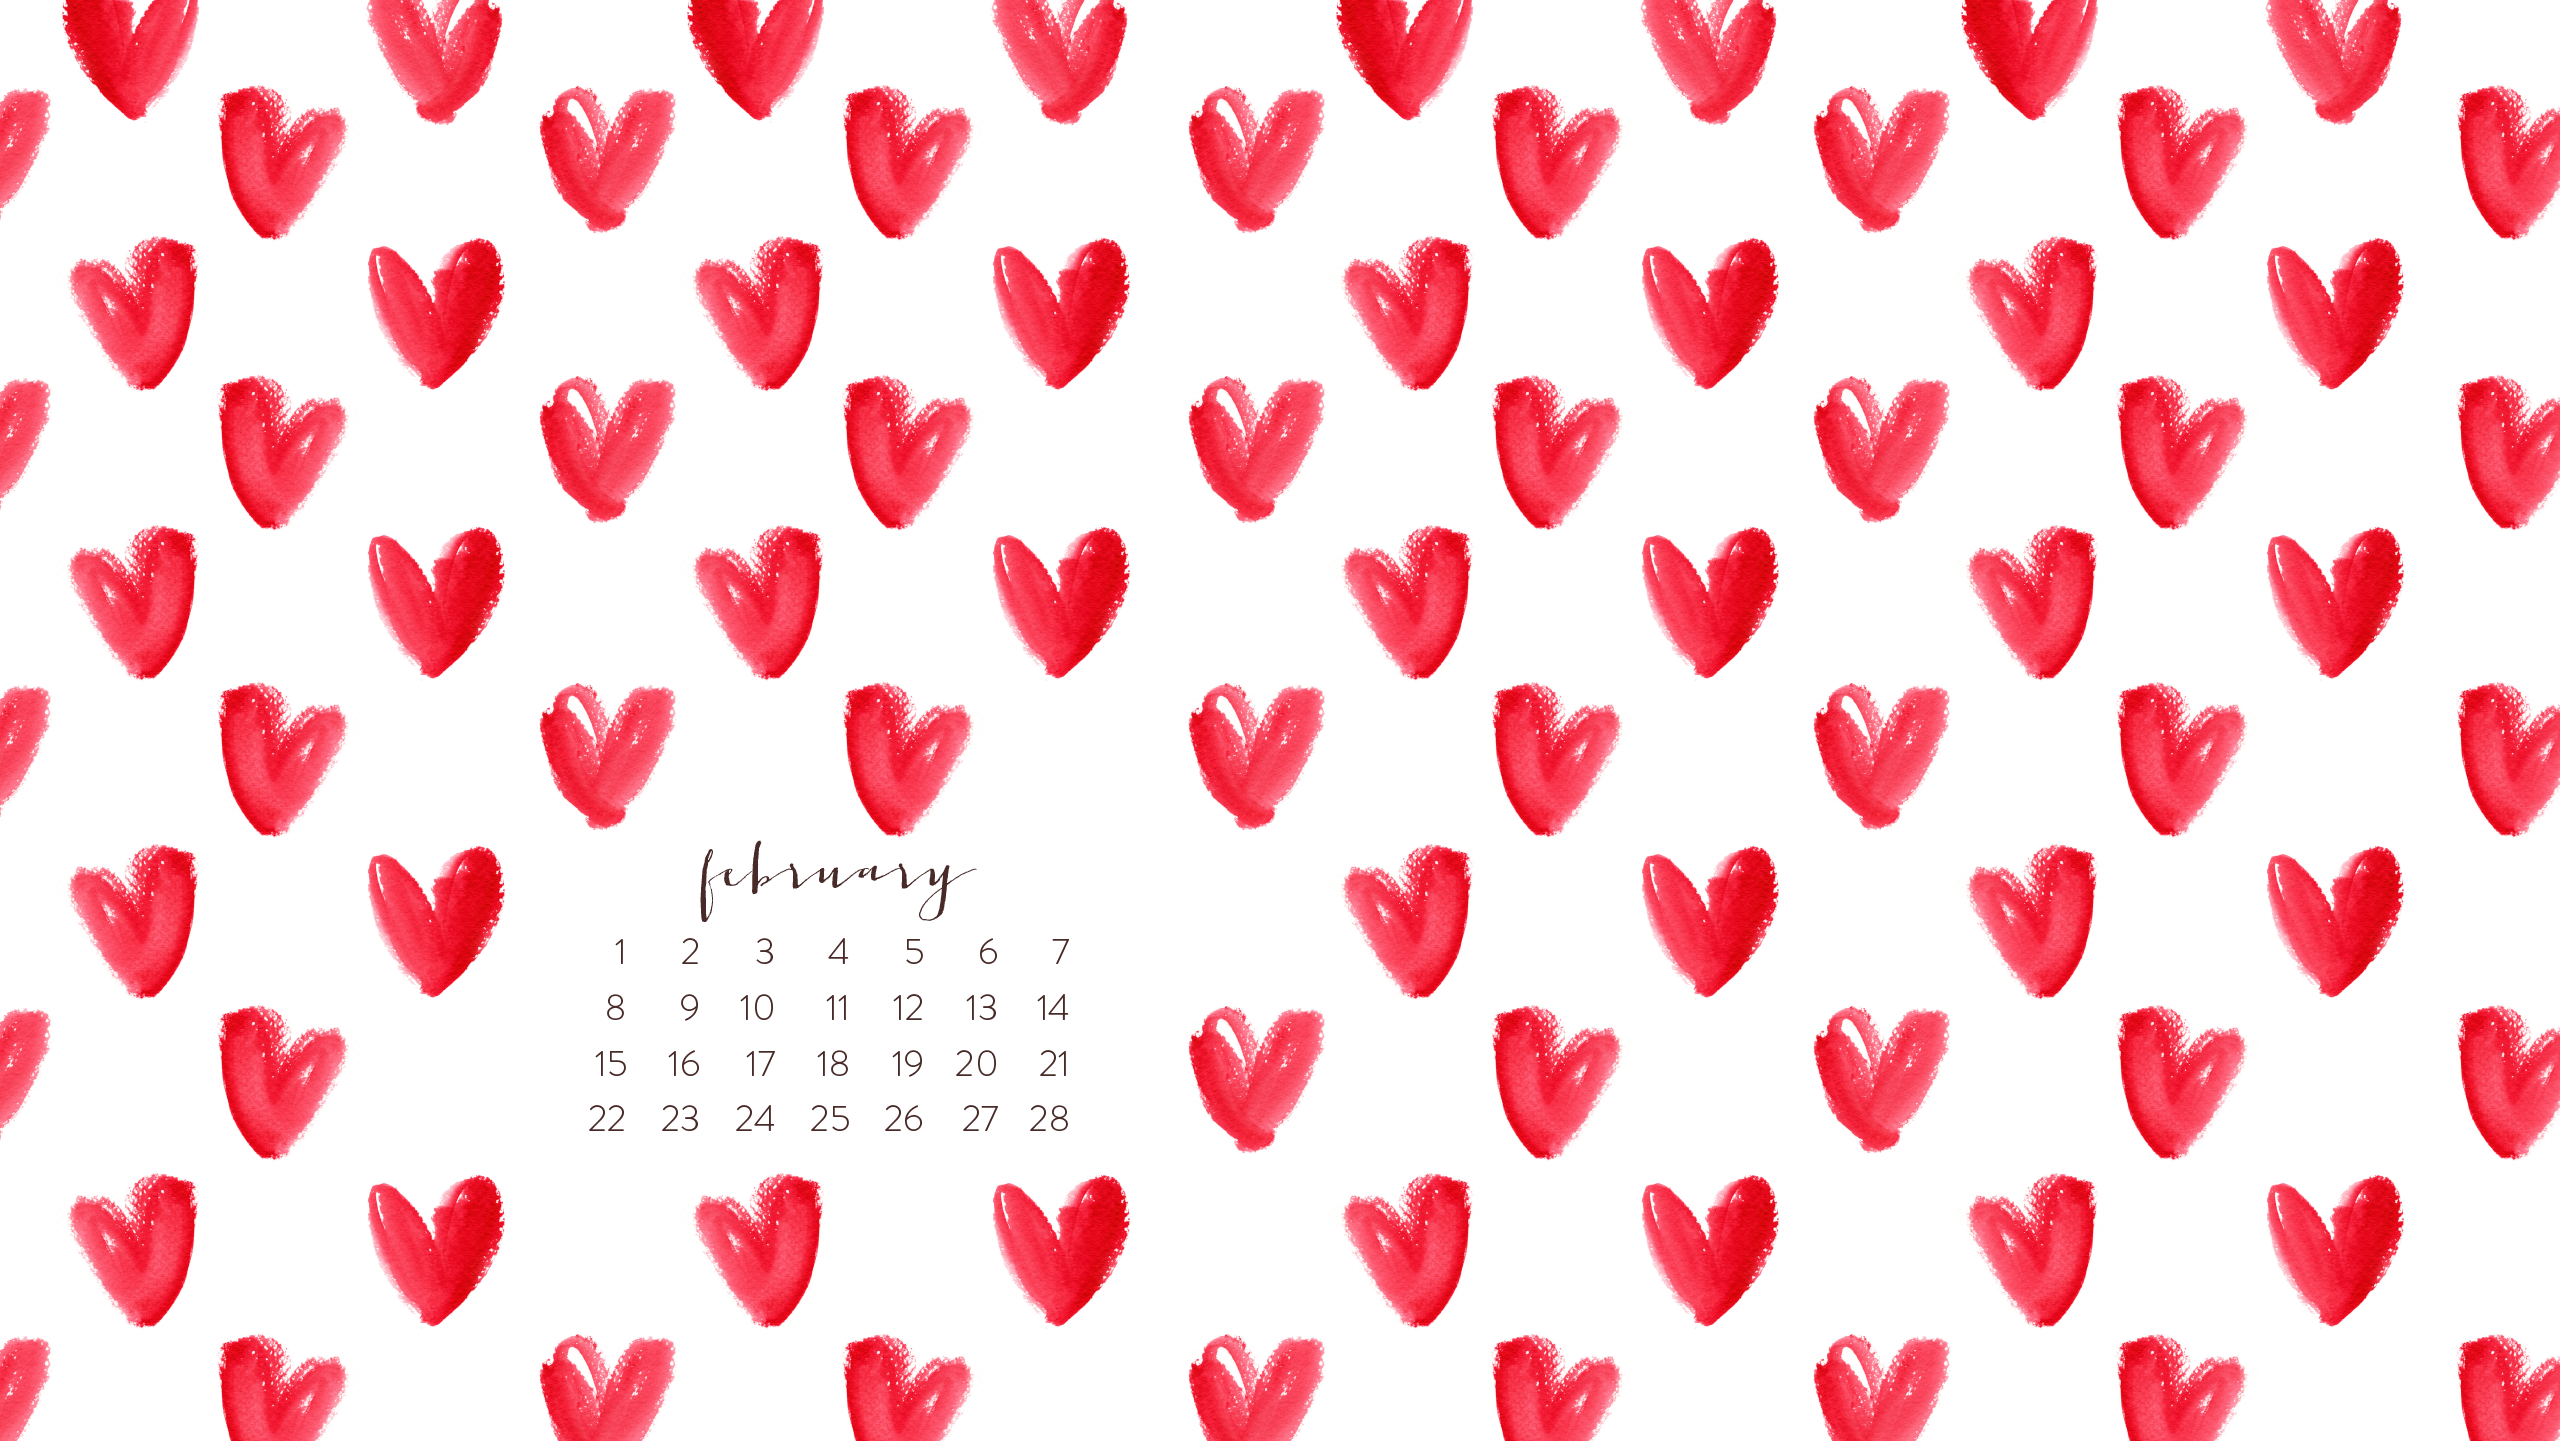 FEBRUARY WALLPAPERS FREE Wallpapers Background images 2560x1441